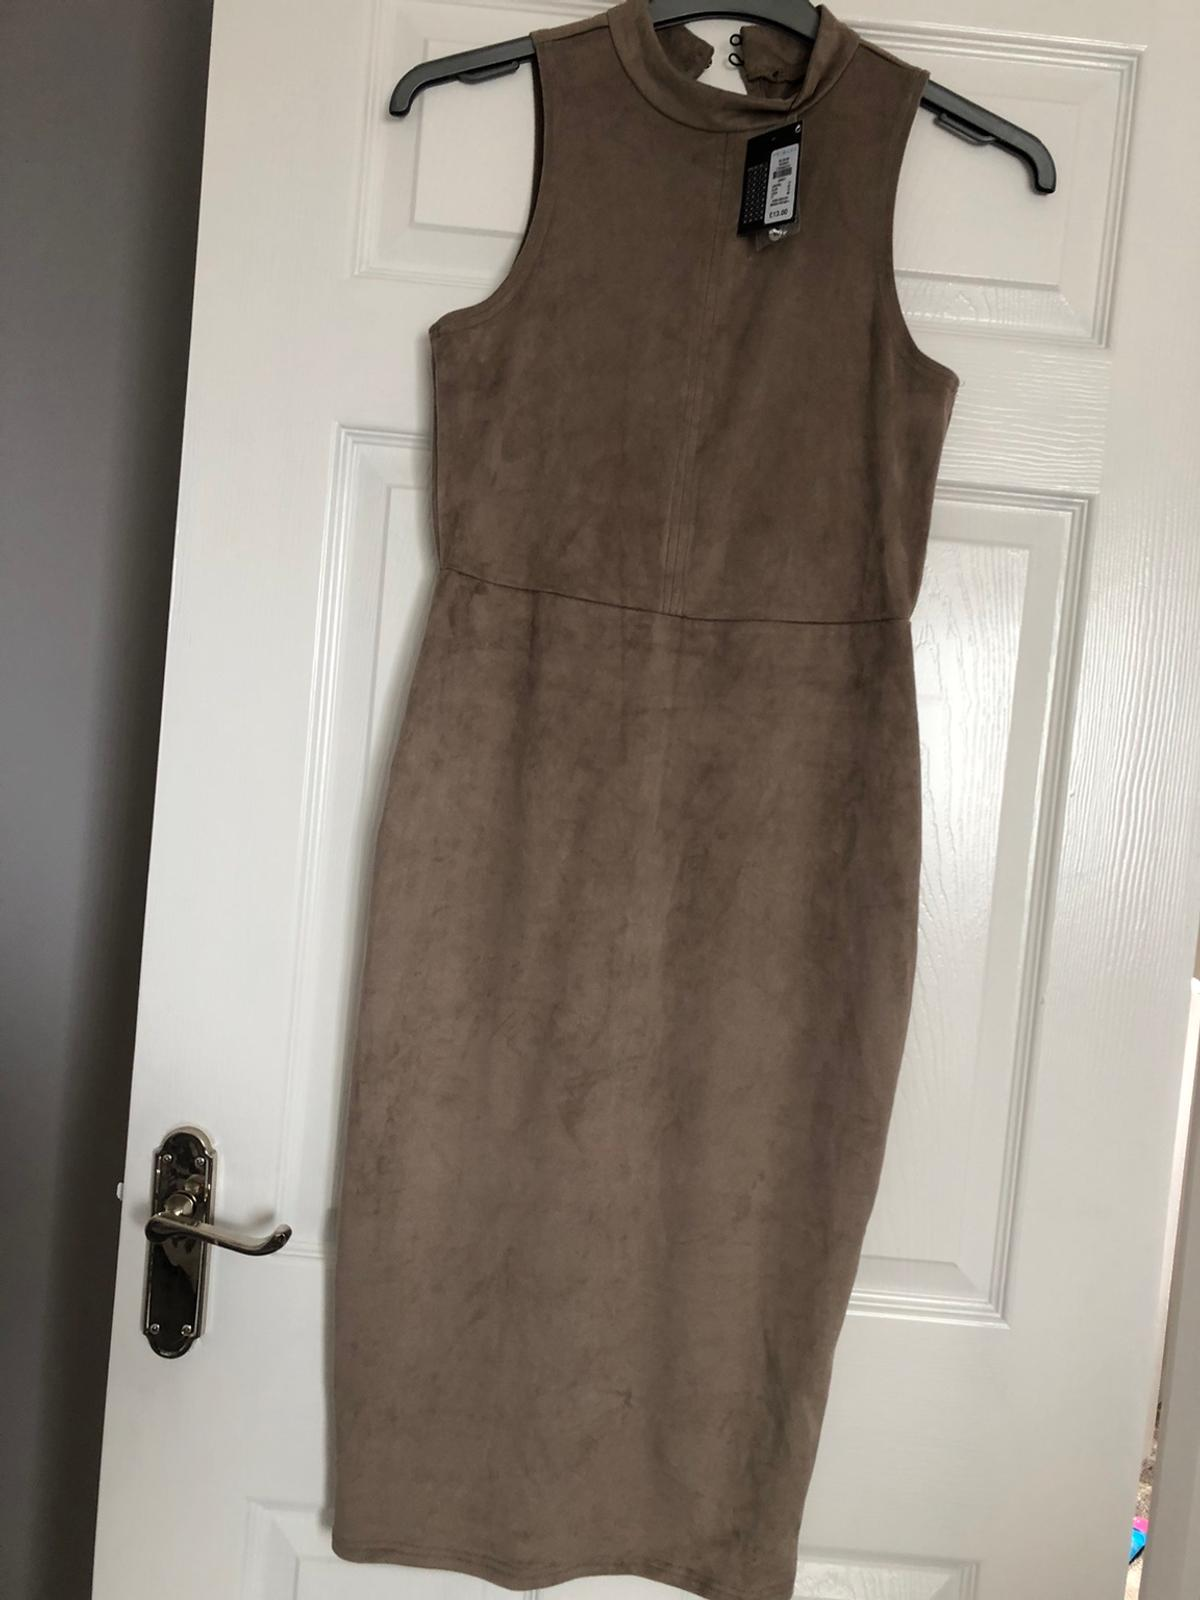 Primark size 14 new with tags nude/grey dress